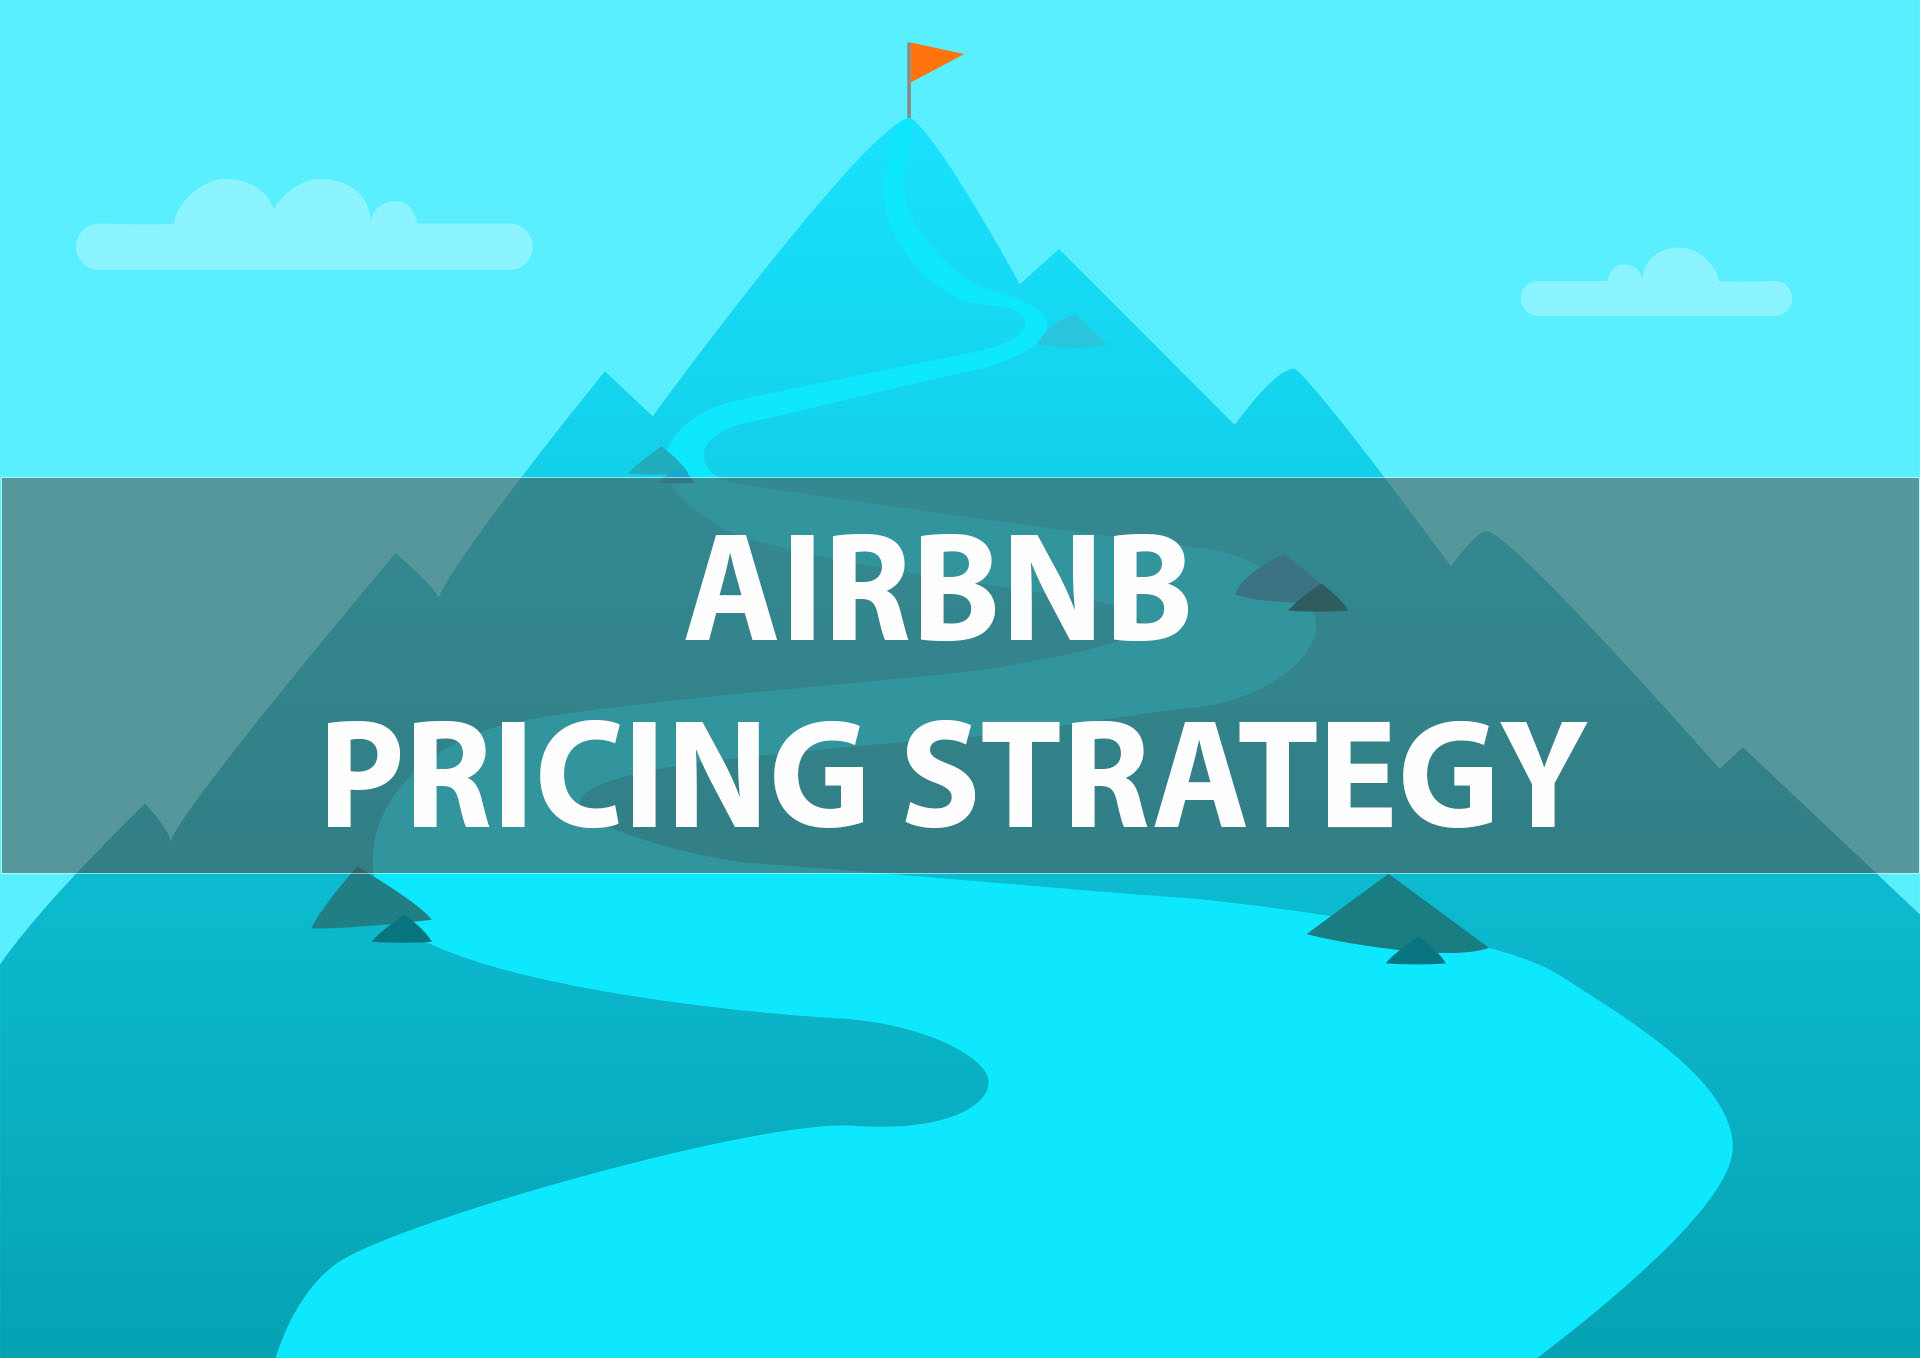 airbnb pricing webinar summary 2